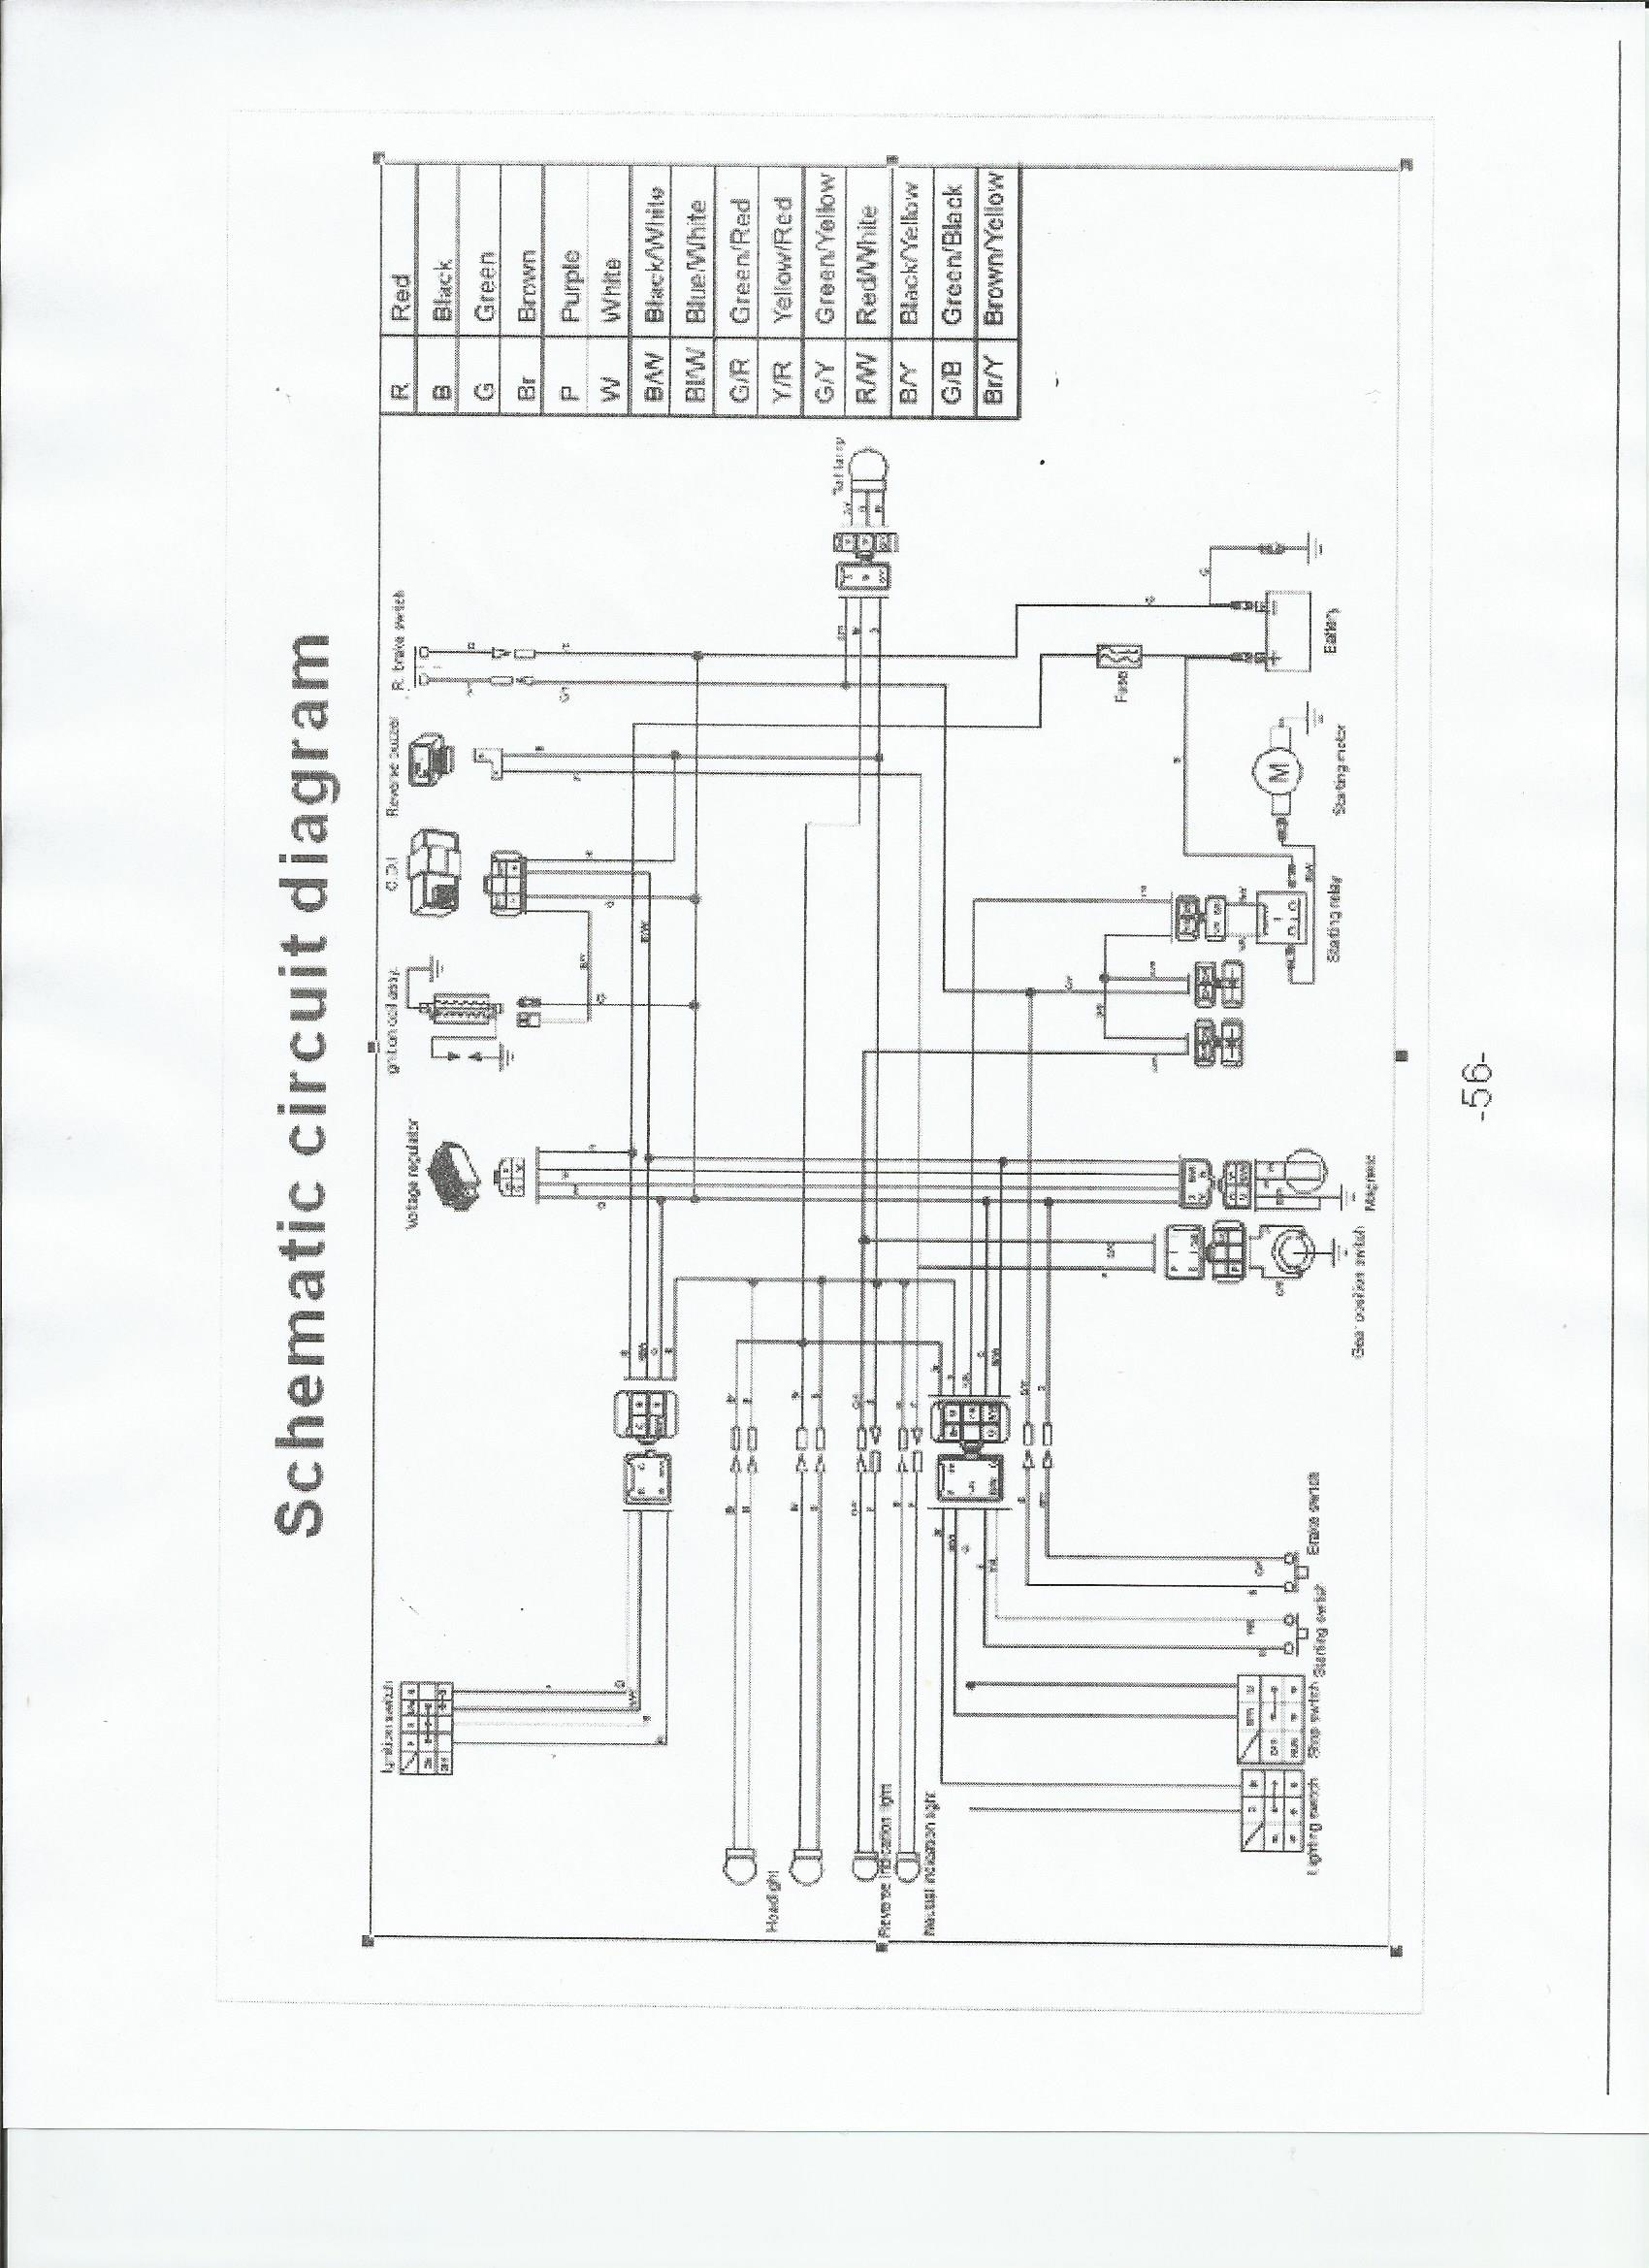 small resolution of jcl atv wiring diagrams wiring diagram blogatv wiring schematic wiring diagram priv jcl atv wiring diagrams